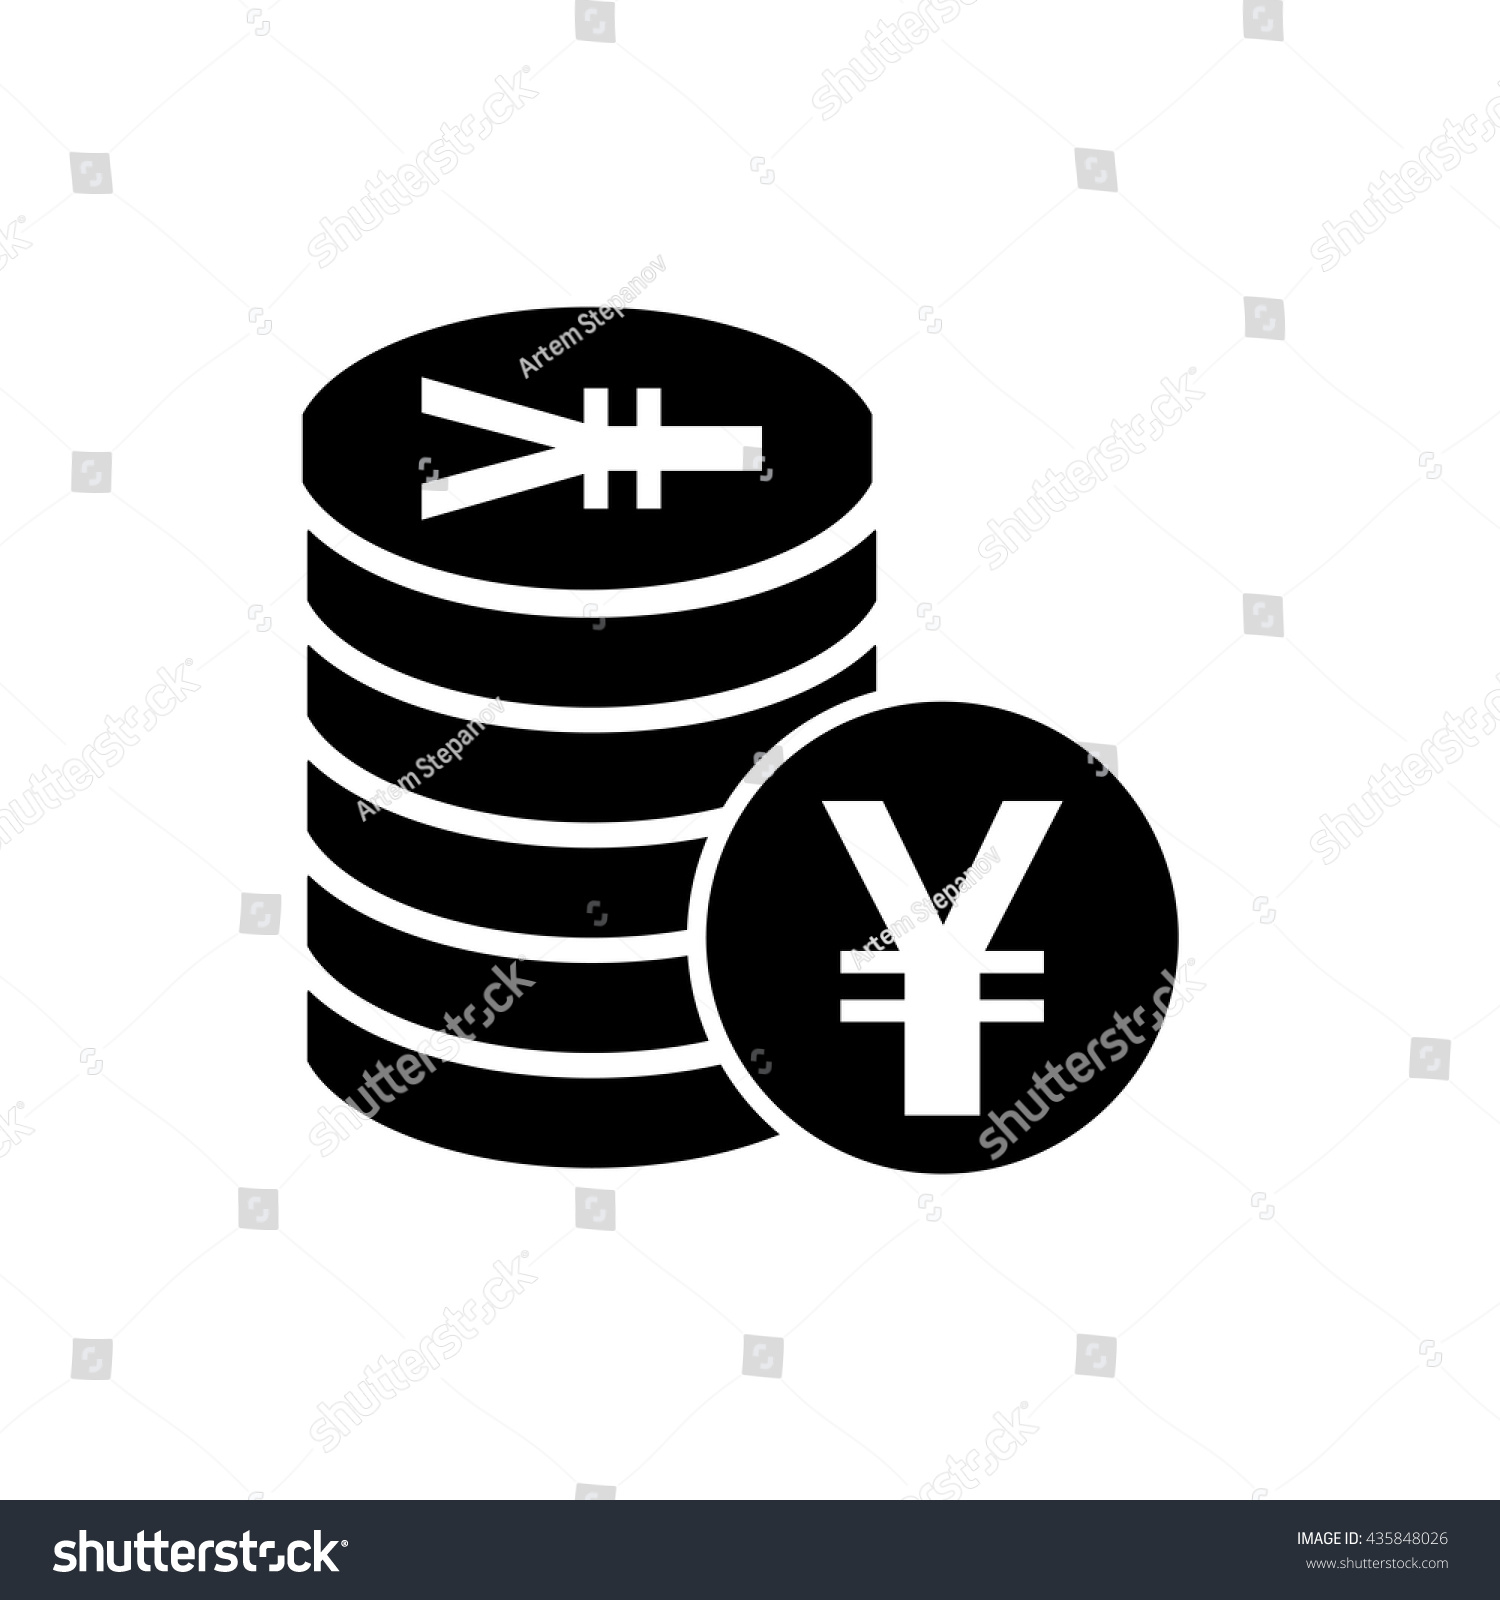 Japanese yen chinese yuan currency symbol stock vector 435848026 japanese yen or chinese yuan currency symbol flat icon for apps and websites biocorpaavc Image collections